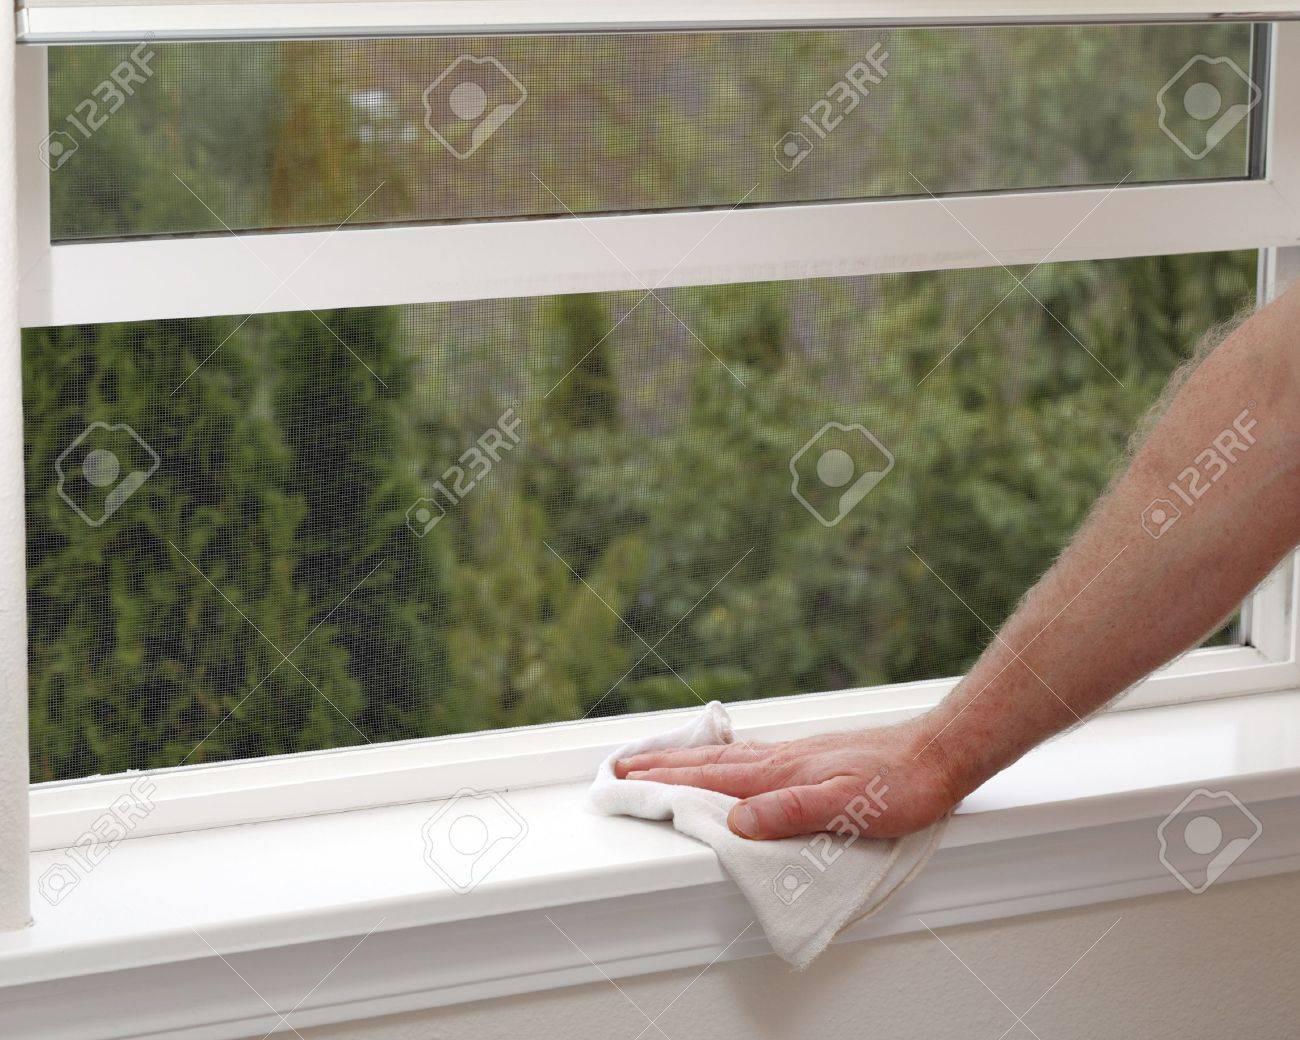 Hand dusting a window sill to reduce allergens in the home. Stock Photo - 10784672